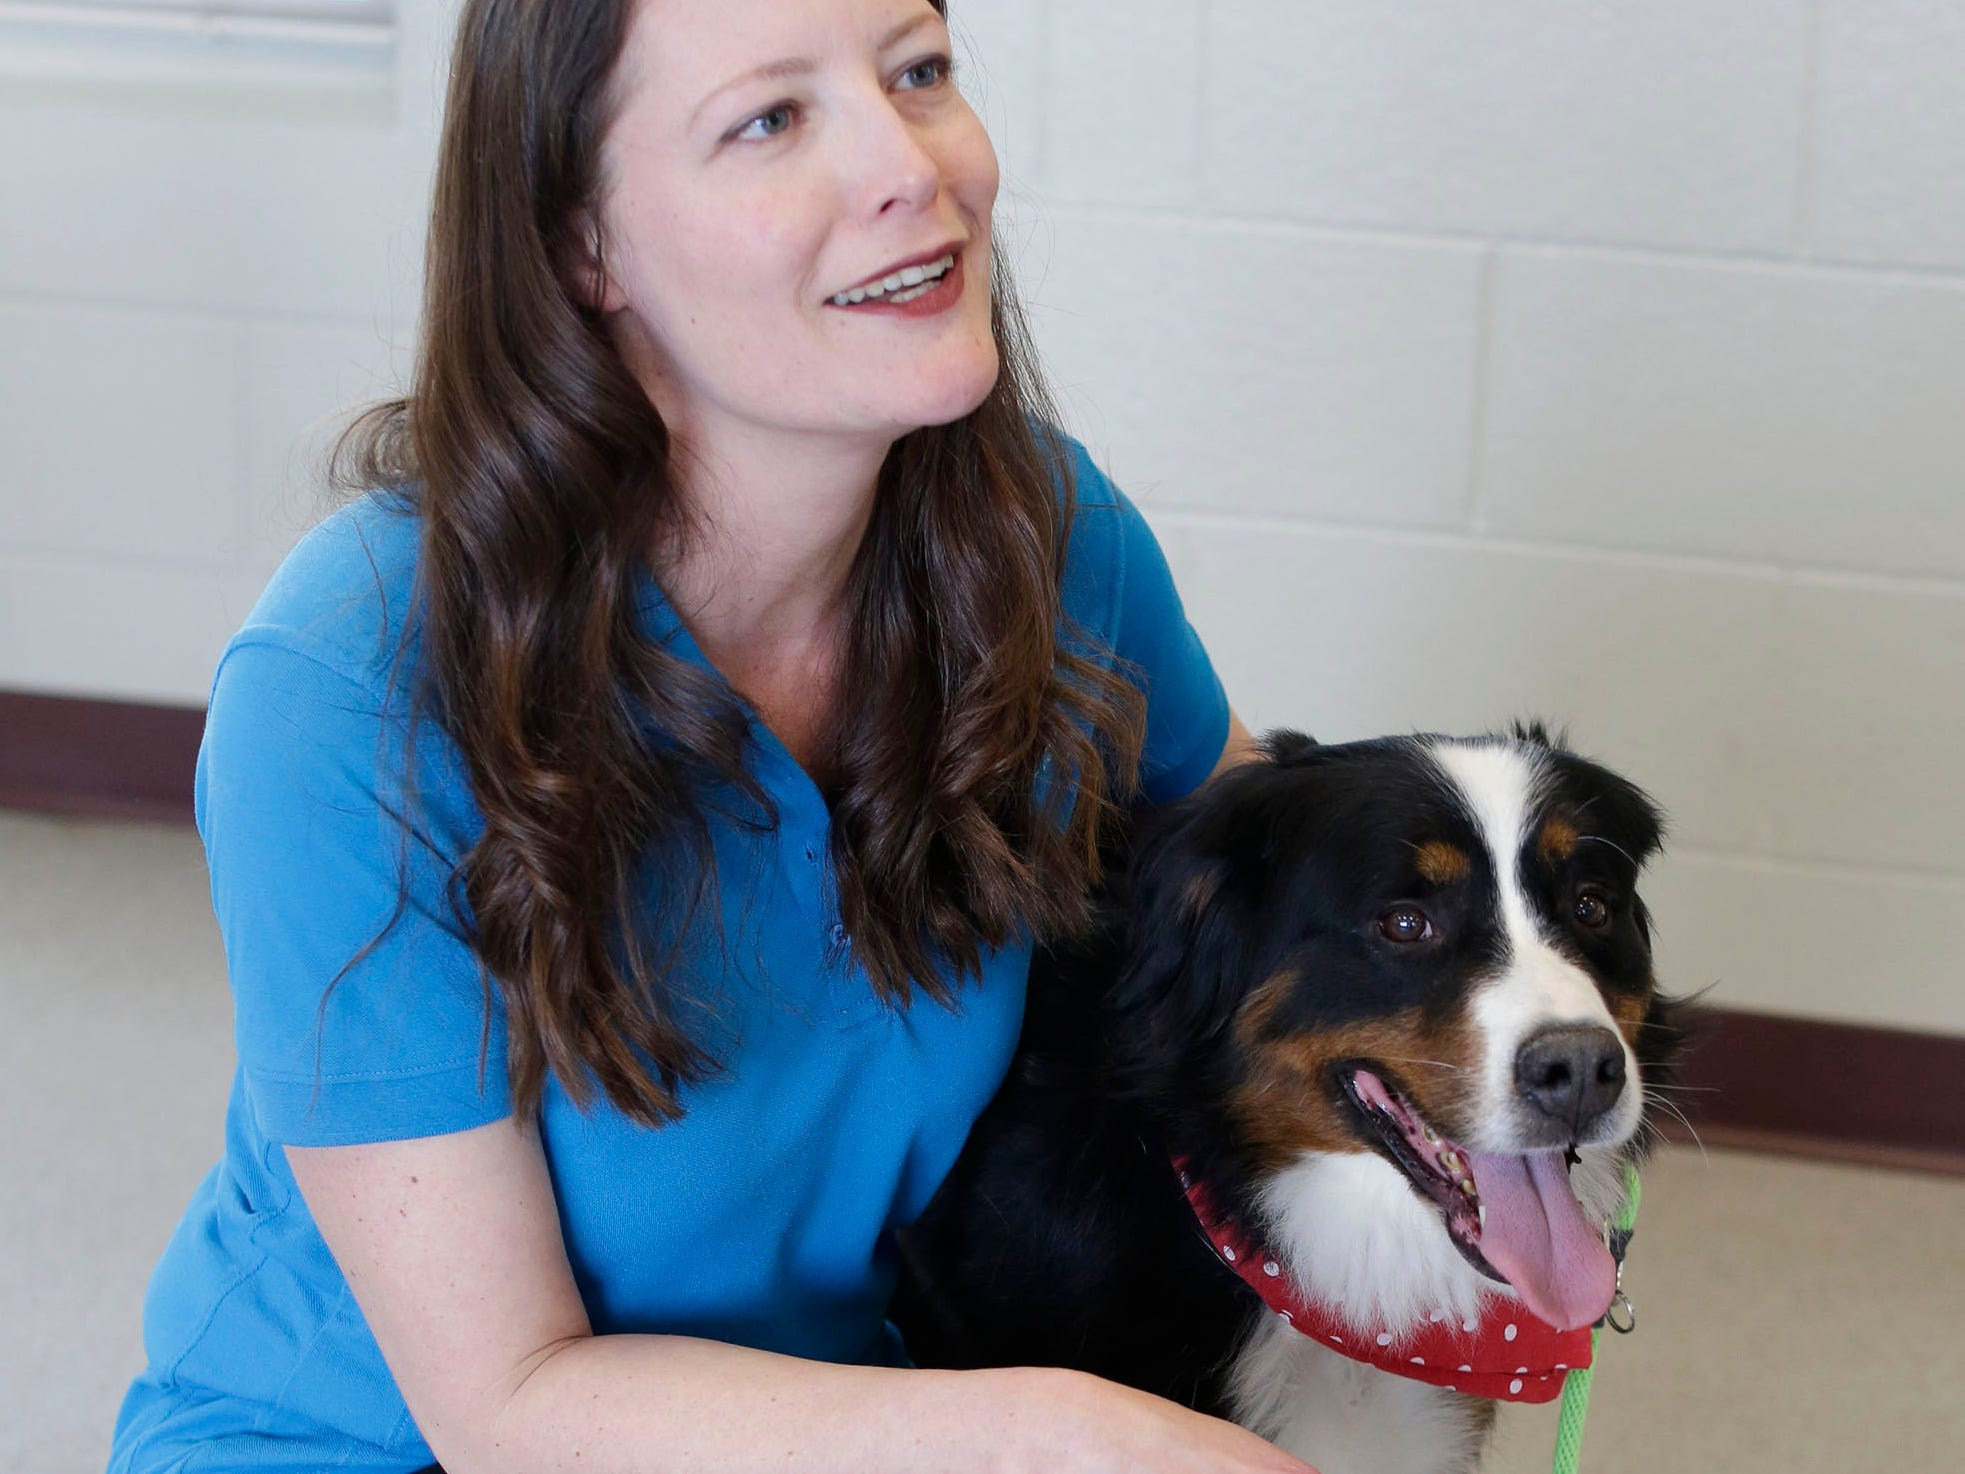 Wisconsin Humane Society's Angela Speed crouches by a Burmese Mountain dog named Pru before a press conference, Thursday, March 14, 2109, in Saukville, Wis. The dog, who will all eventually be adopted out, was part of the 36 live dogs that were seized in 2017 from Kinship Companions, a kennel that has been since shut down.